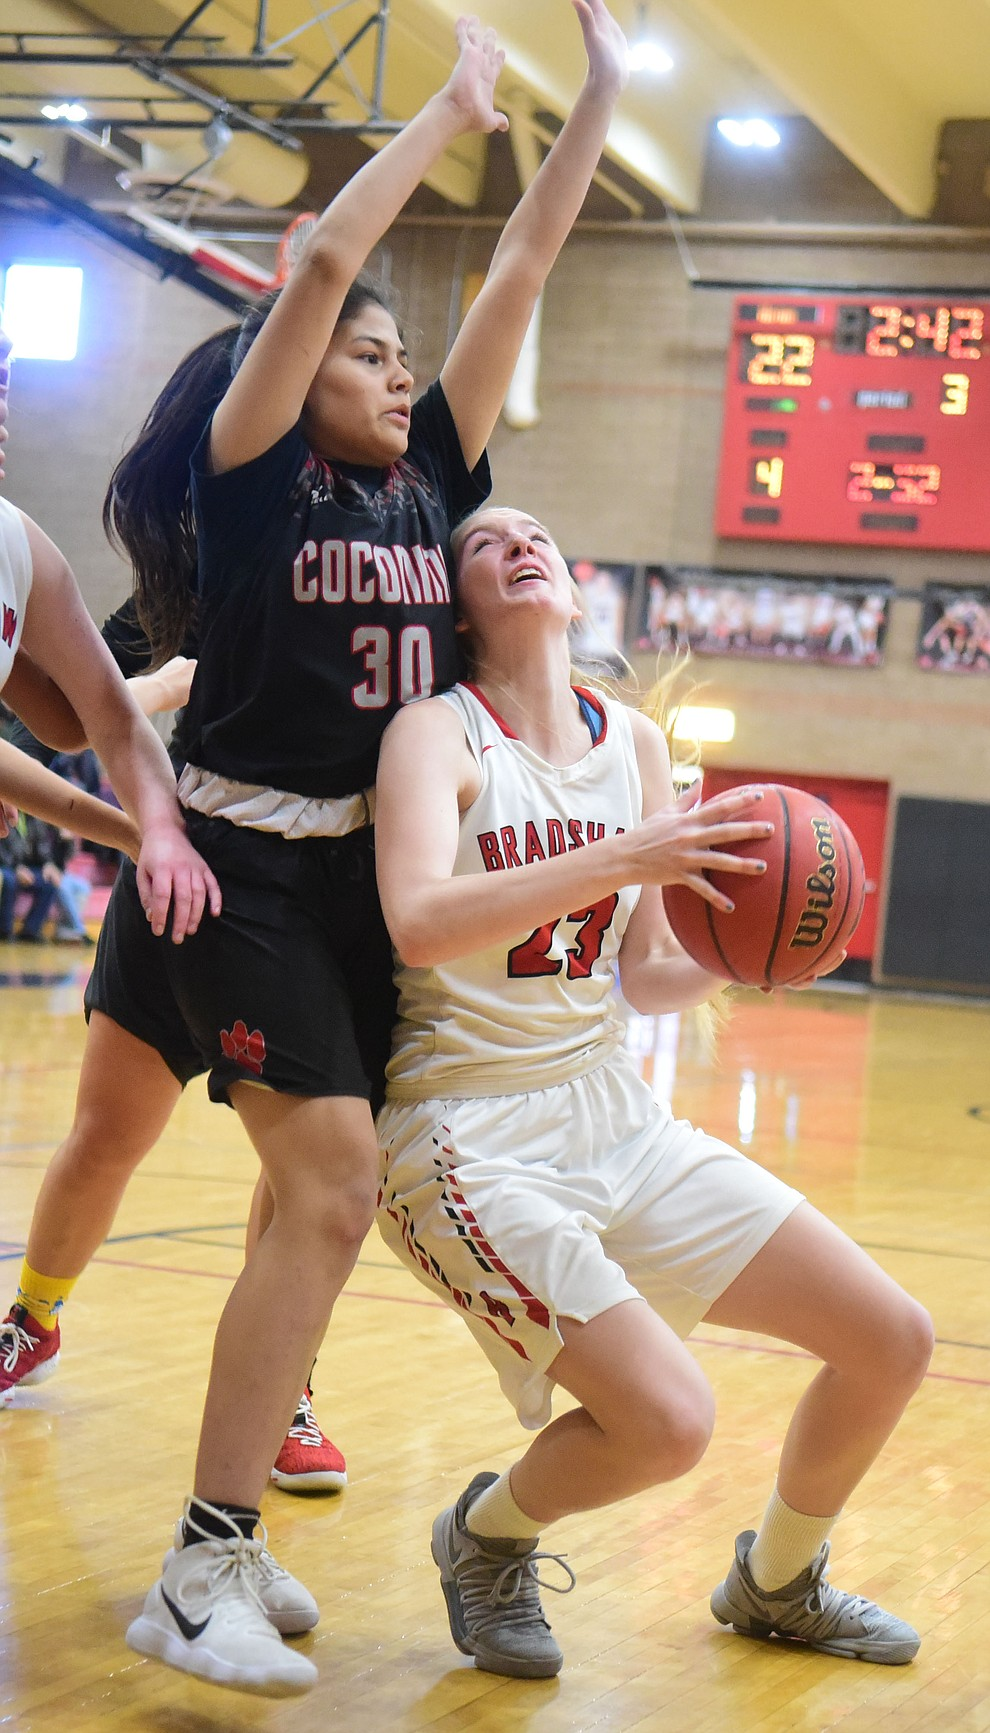 Bradshaw Mountain's Rylee Bundrick draws the fall in the paint as the Bears hosted Coconino in a doubleheader hoops matchup Saturday, Dec. 15, 2018 in Prescott Valley. (Les Stukenberg/Courier).